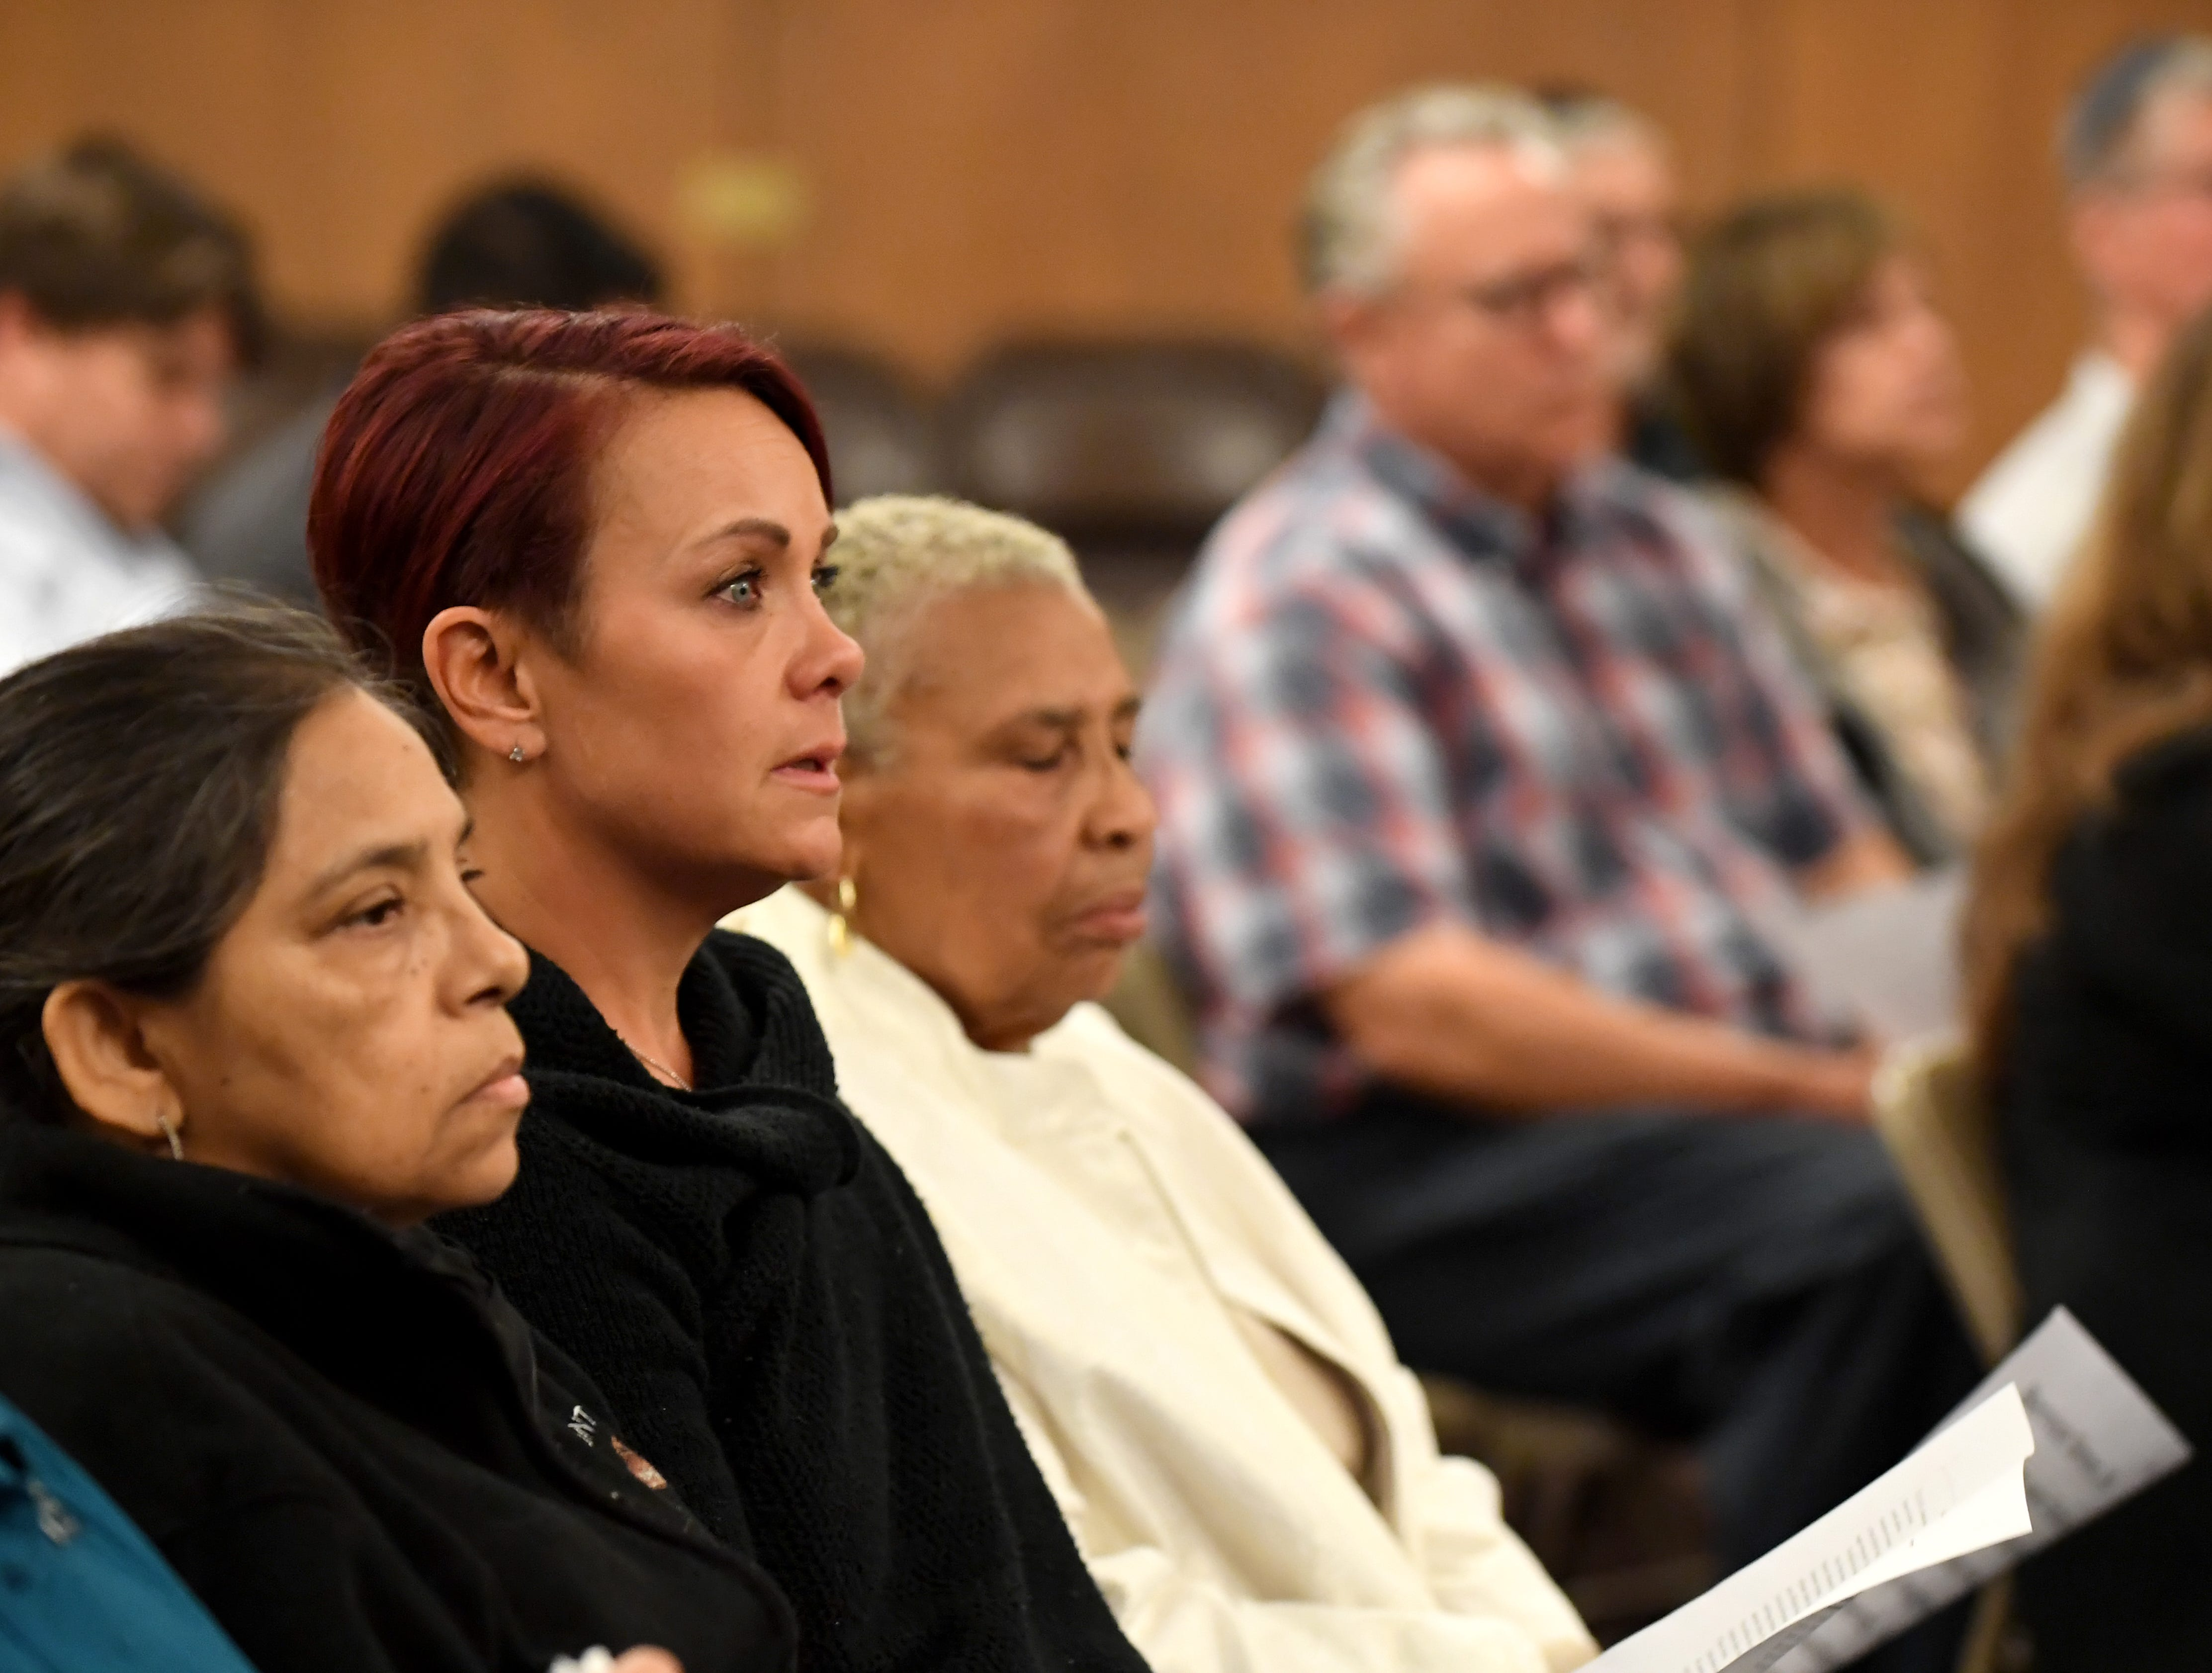 Salinas resident Joanne Robbins (second from left) listens during a gathering at Temple Beth El on Monday night to mourn those killed in the Pittsburgh synagogue shooting.